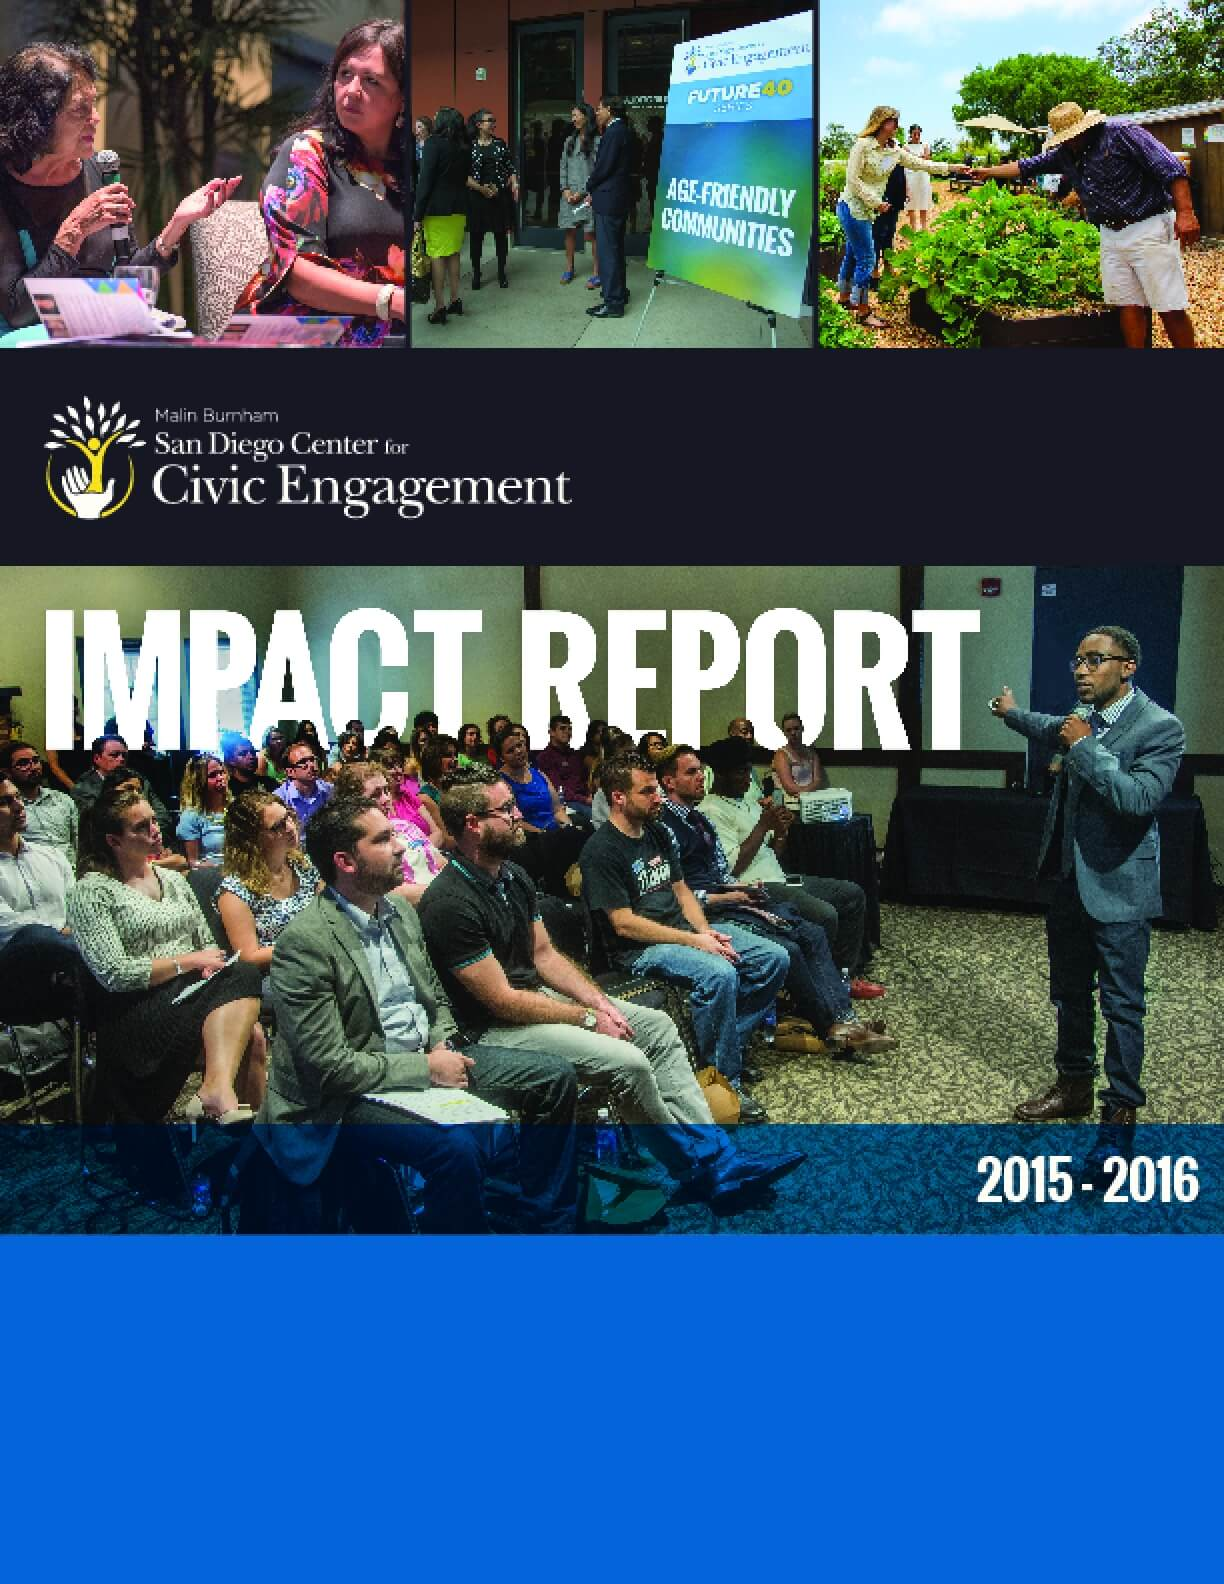 Malin Burnham Center for Civic Engagement Impact report 2015-2016